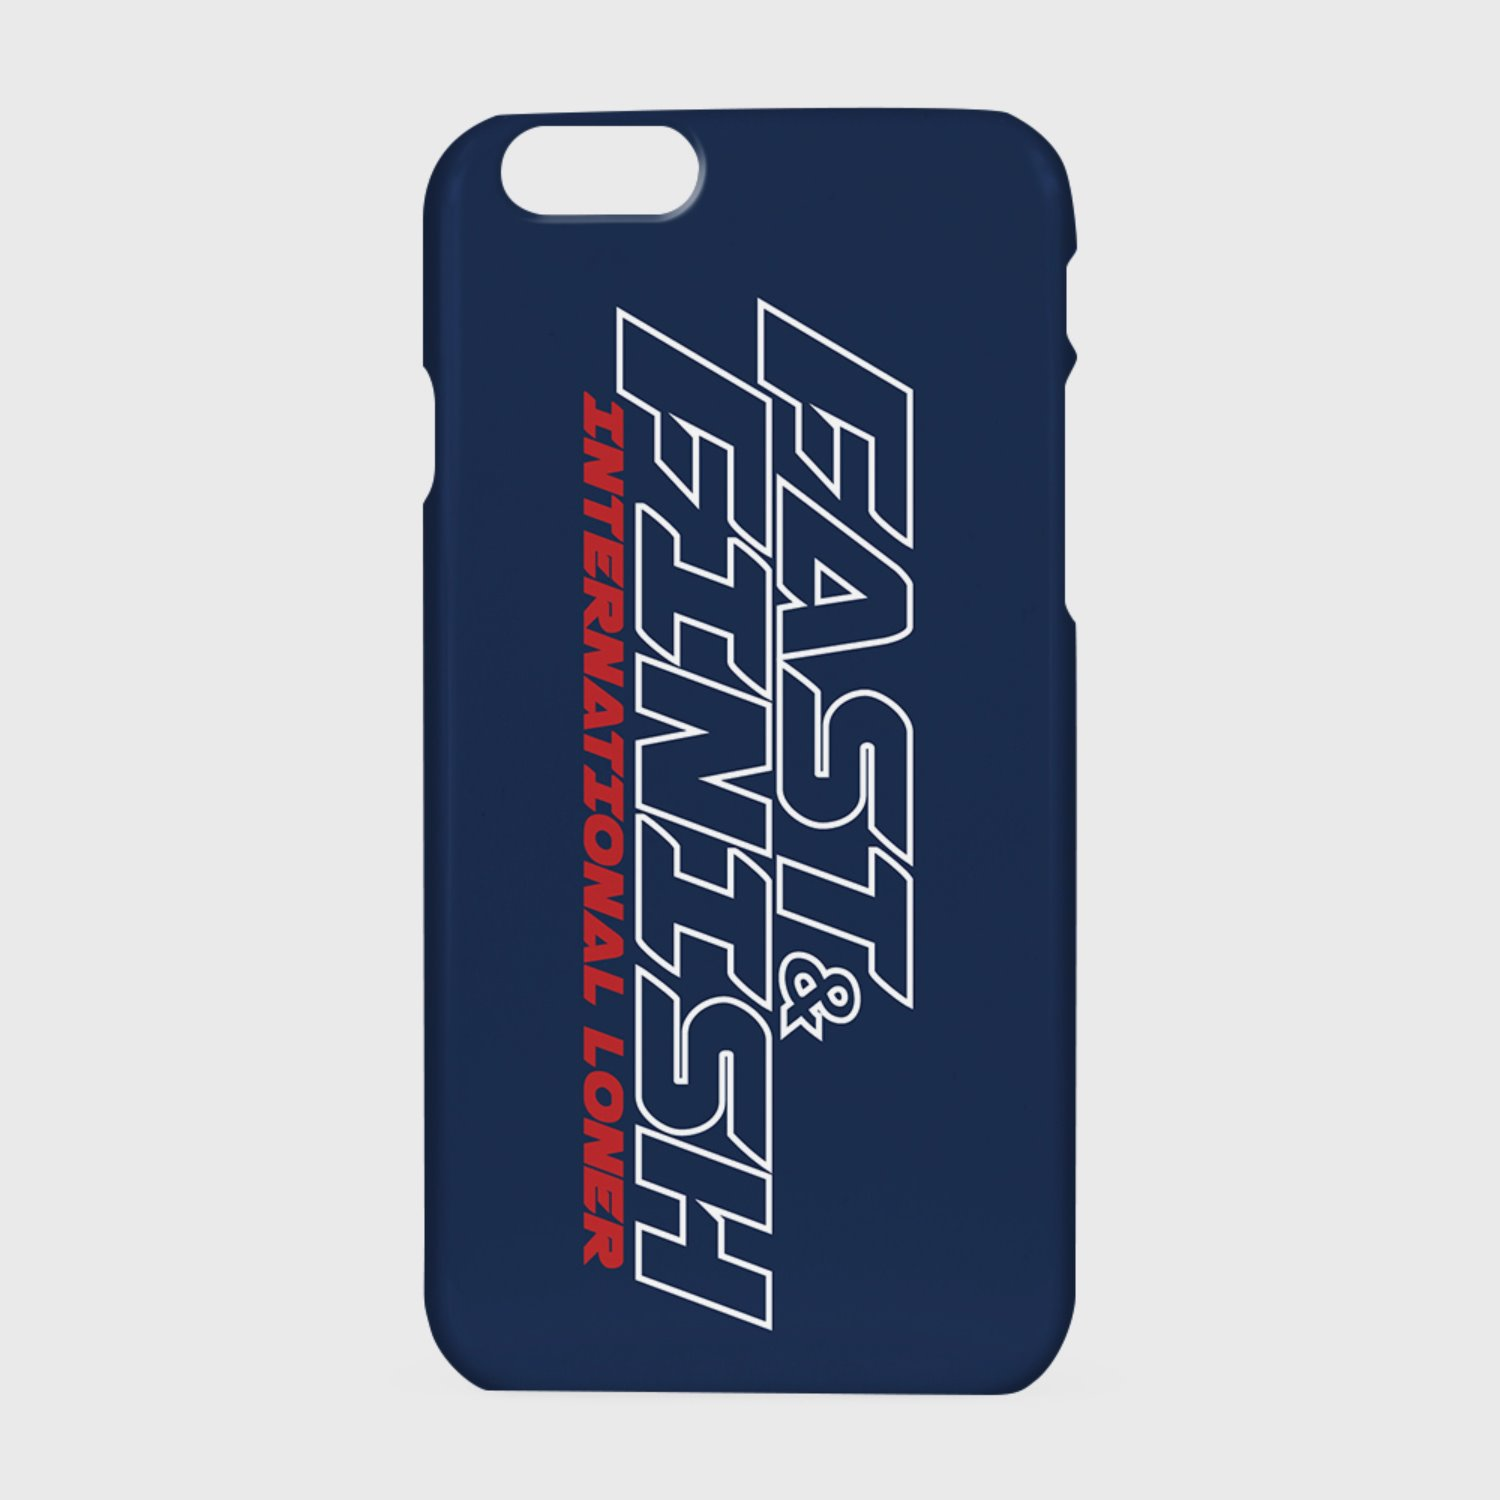 Fast and finish case-navy (기간한정 07.17 - 07.23)